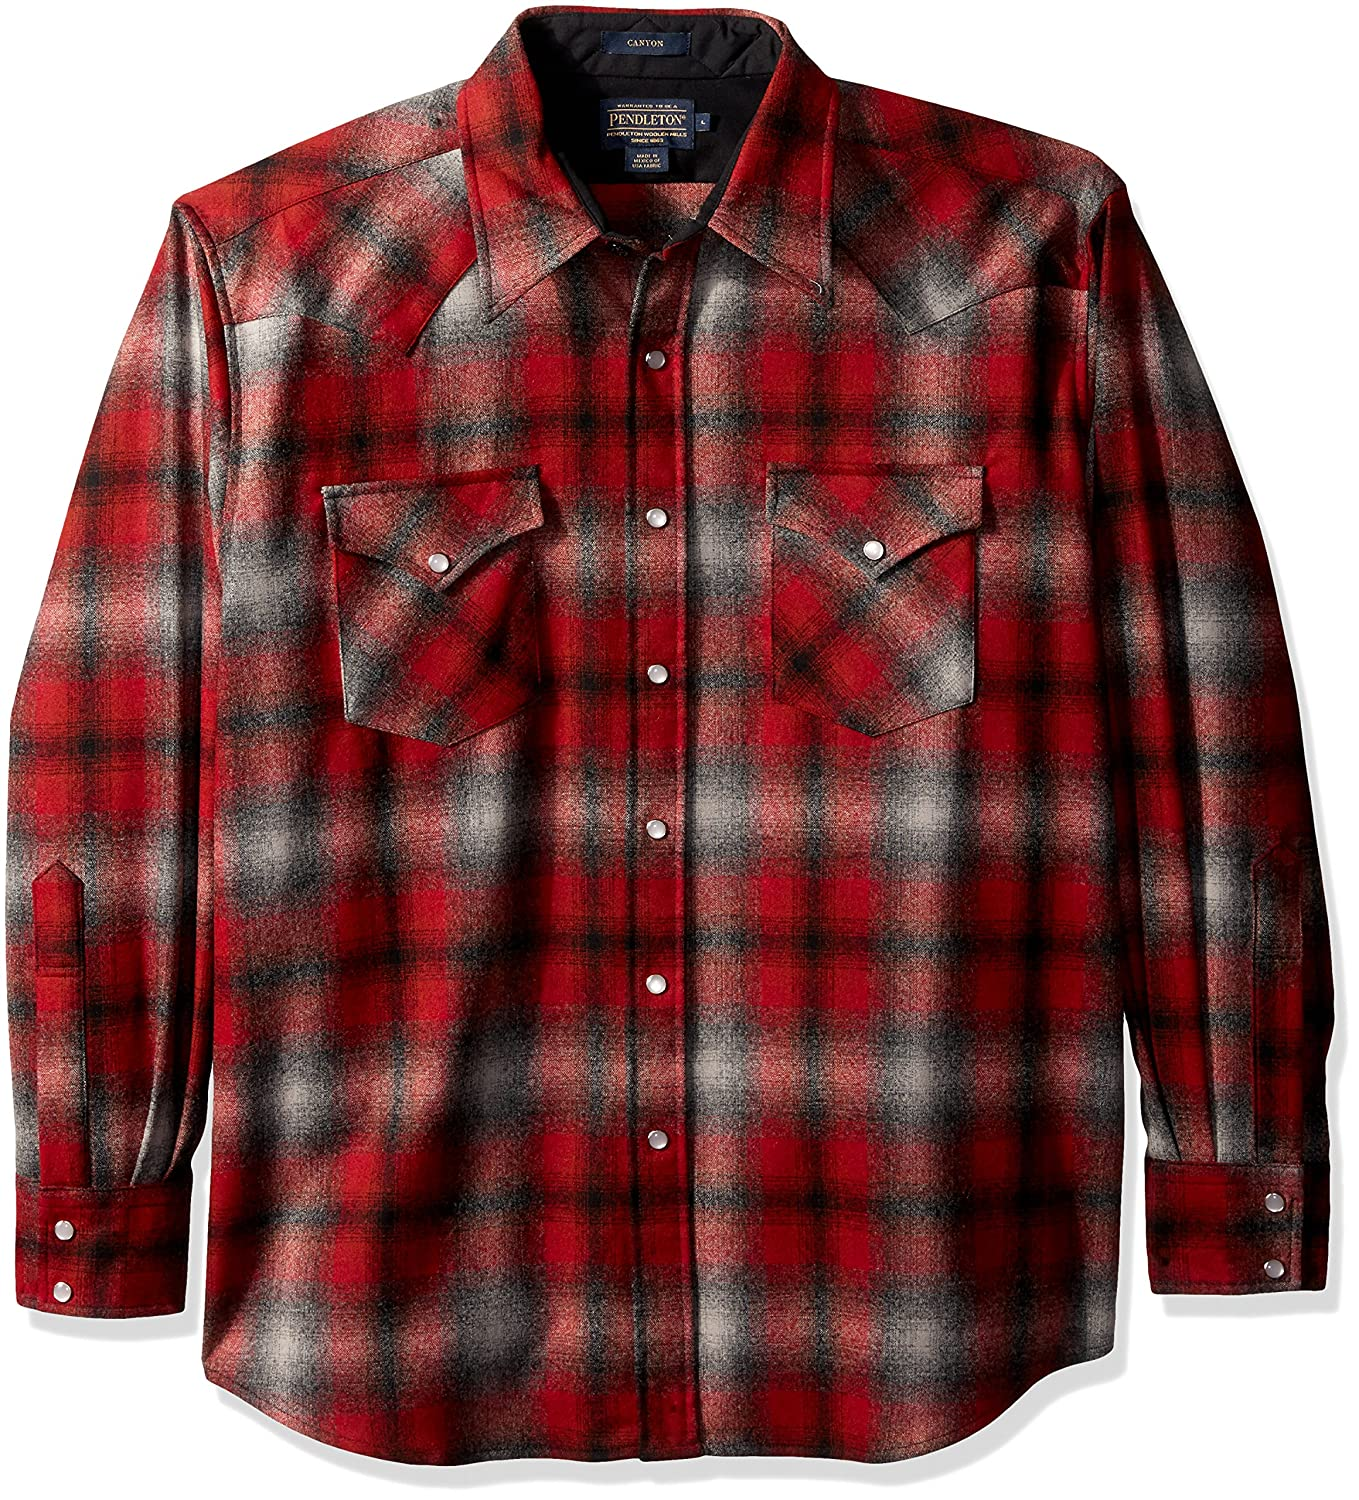 Pendleton メンズ長袖キャニオンシャツ B01N9TTVZY L|Red/Grey Ombre-31948 Red/Grey Ombre-31948 L